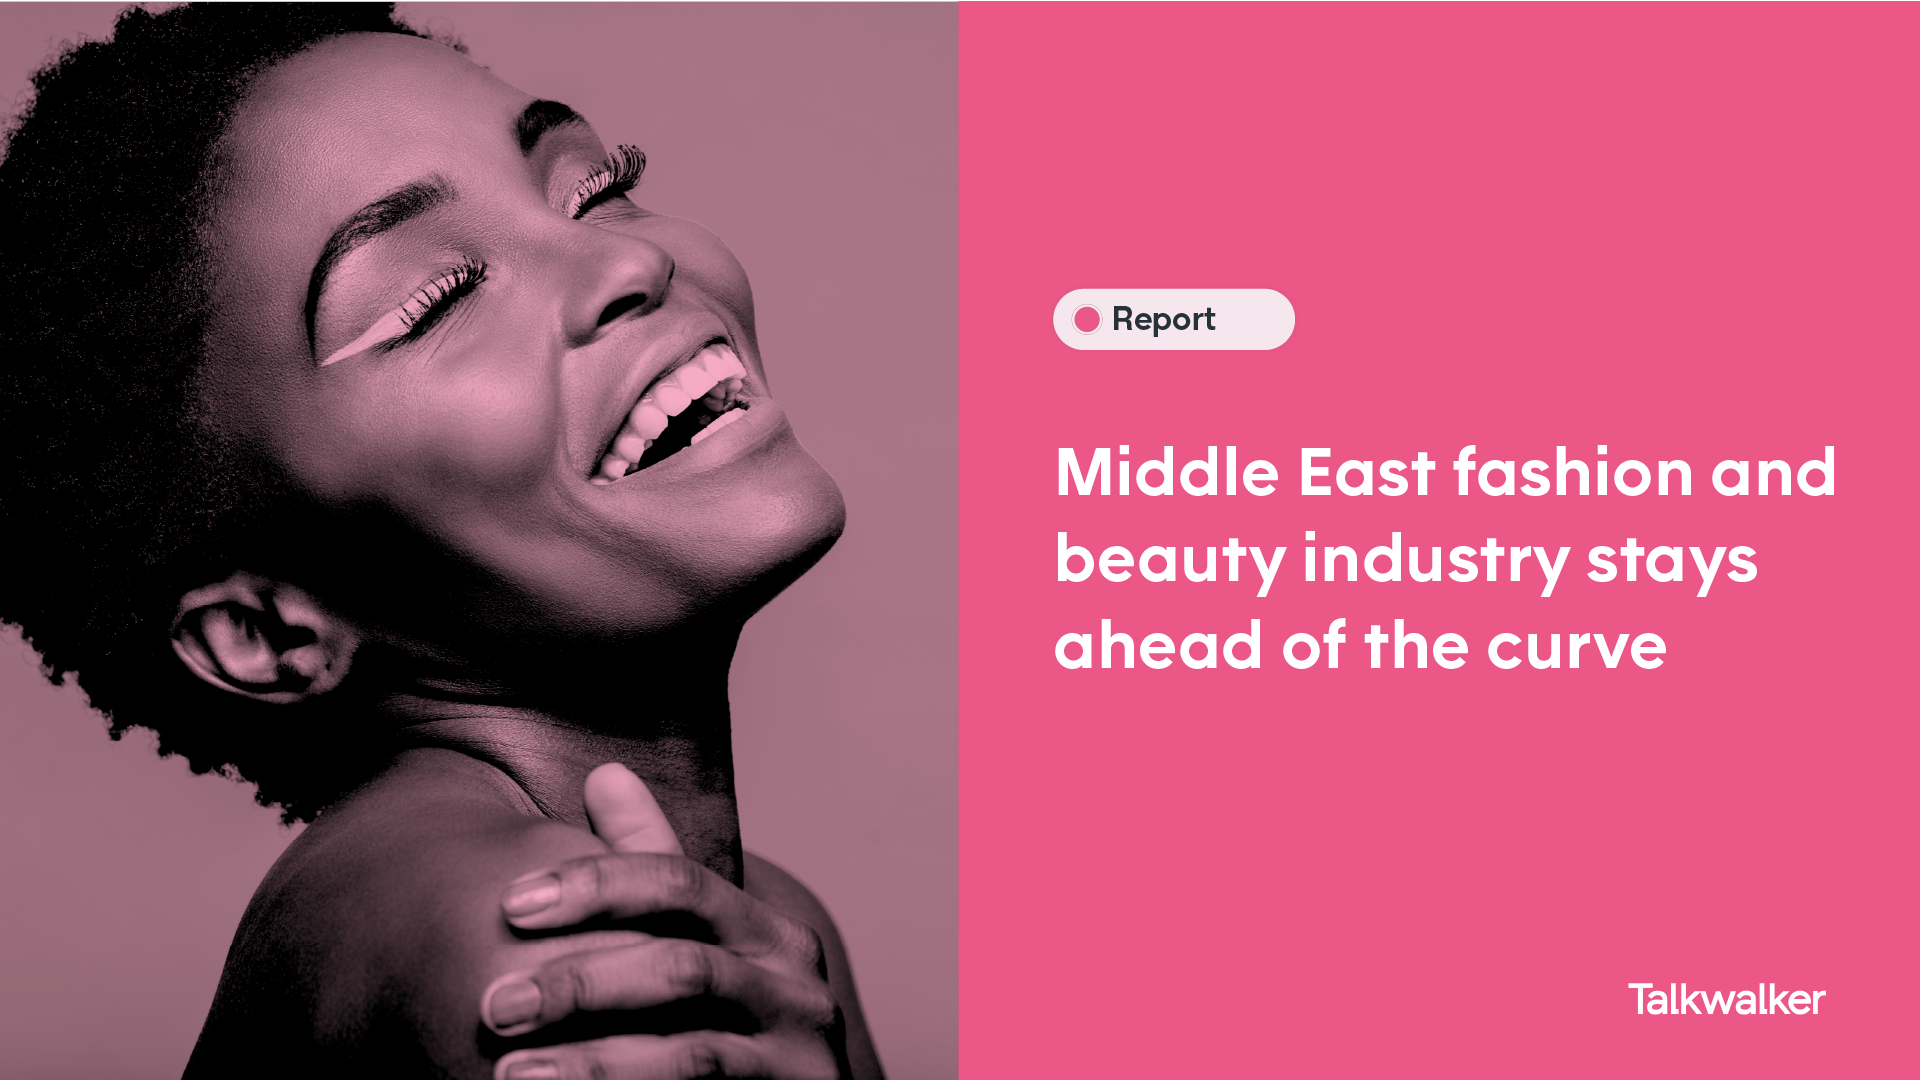 Middle East fashion and Beauty industry stays ahead of the curve